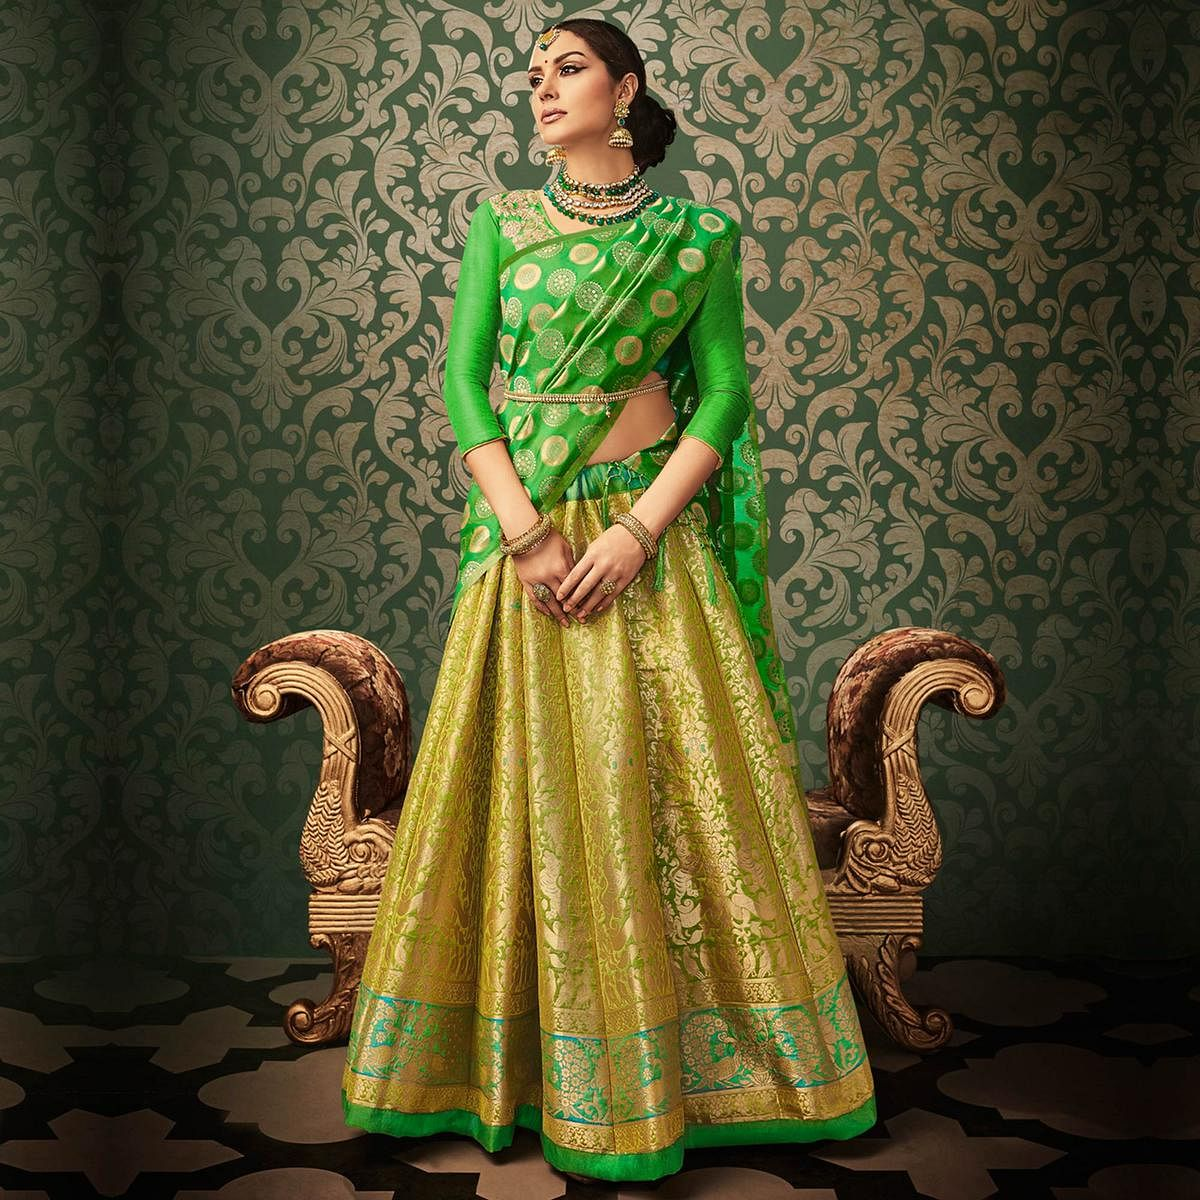 bc8072ee18 Buy Green Pure Banarasi Silk Wedding Wear Lehenga Choli for womens online  India, Best Prices, Reviews - Peachmode